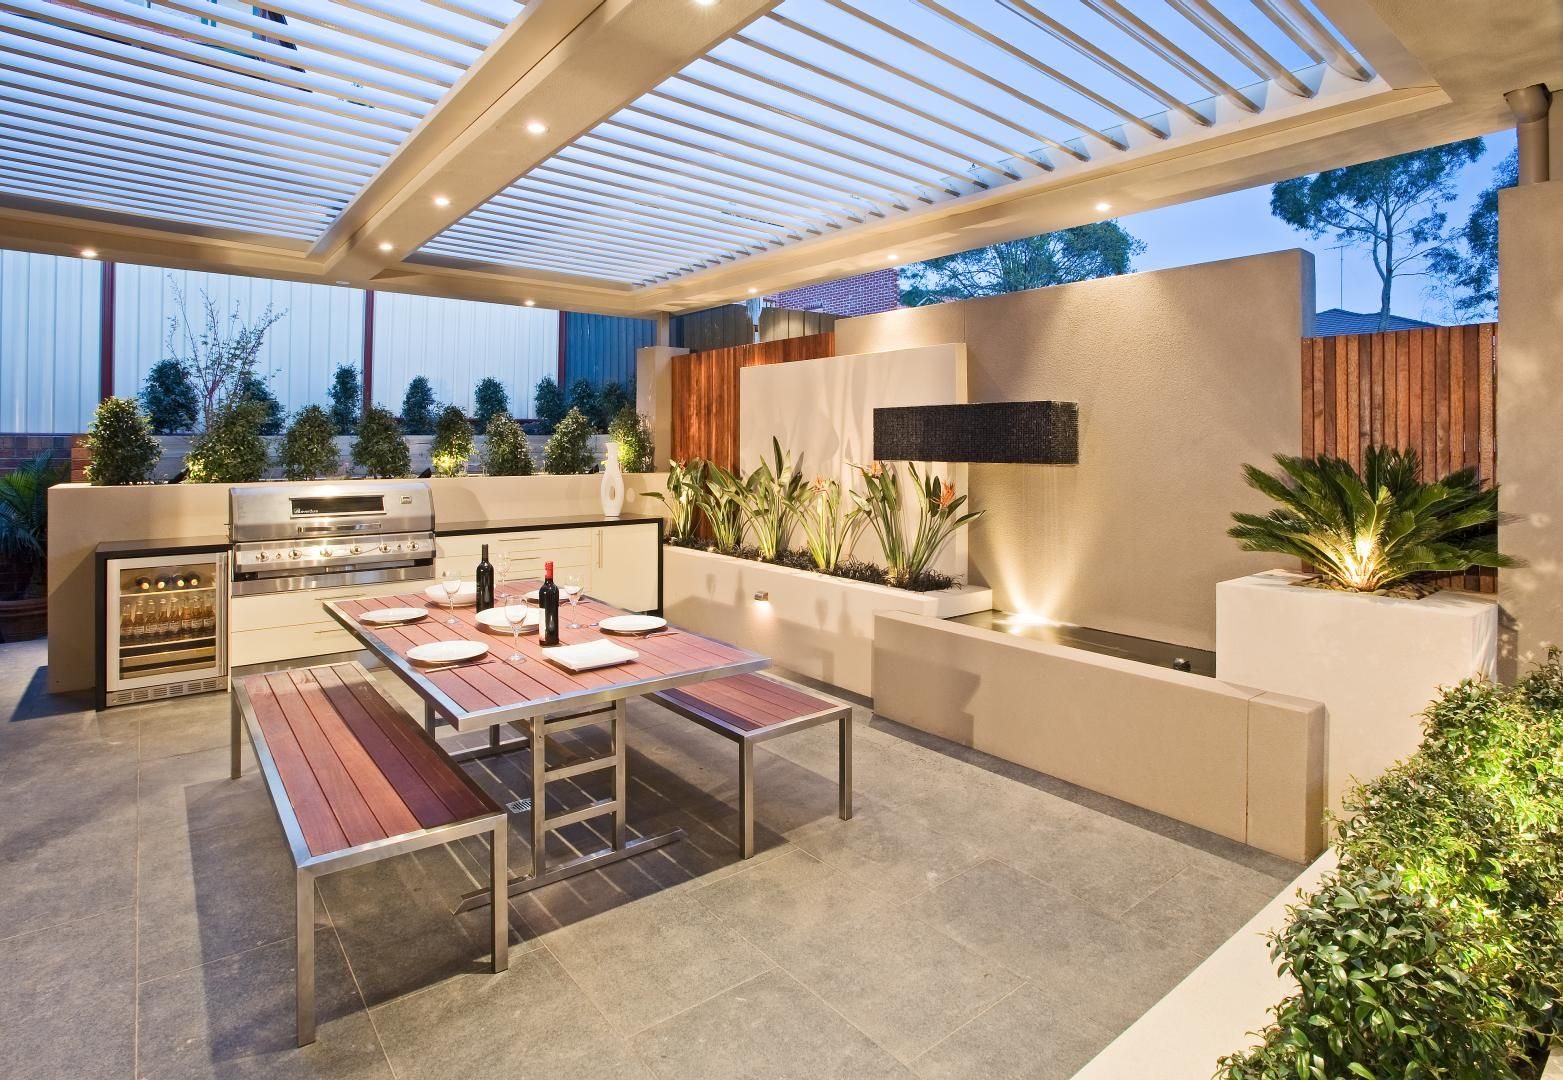 Outdoor entertaining area. Project by COS Design ... on Garden Entertainment Area Ideas id=30410